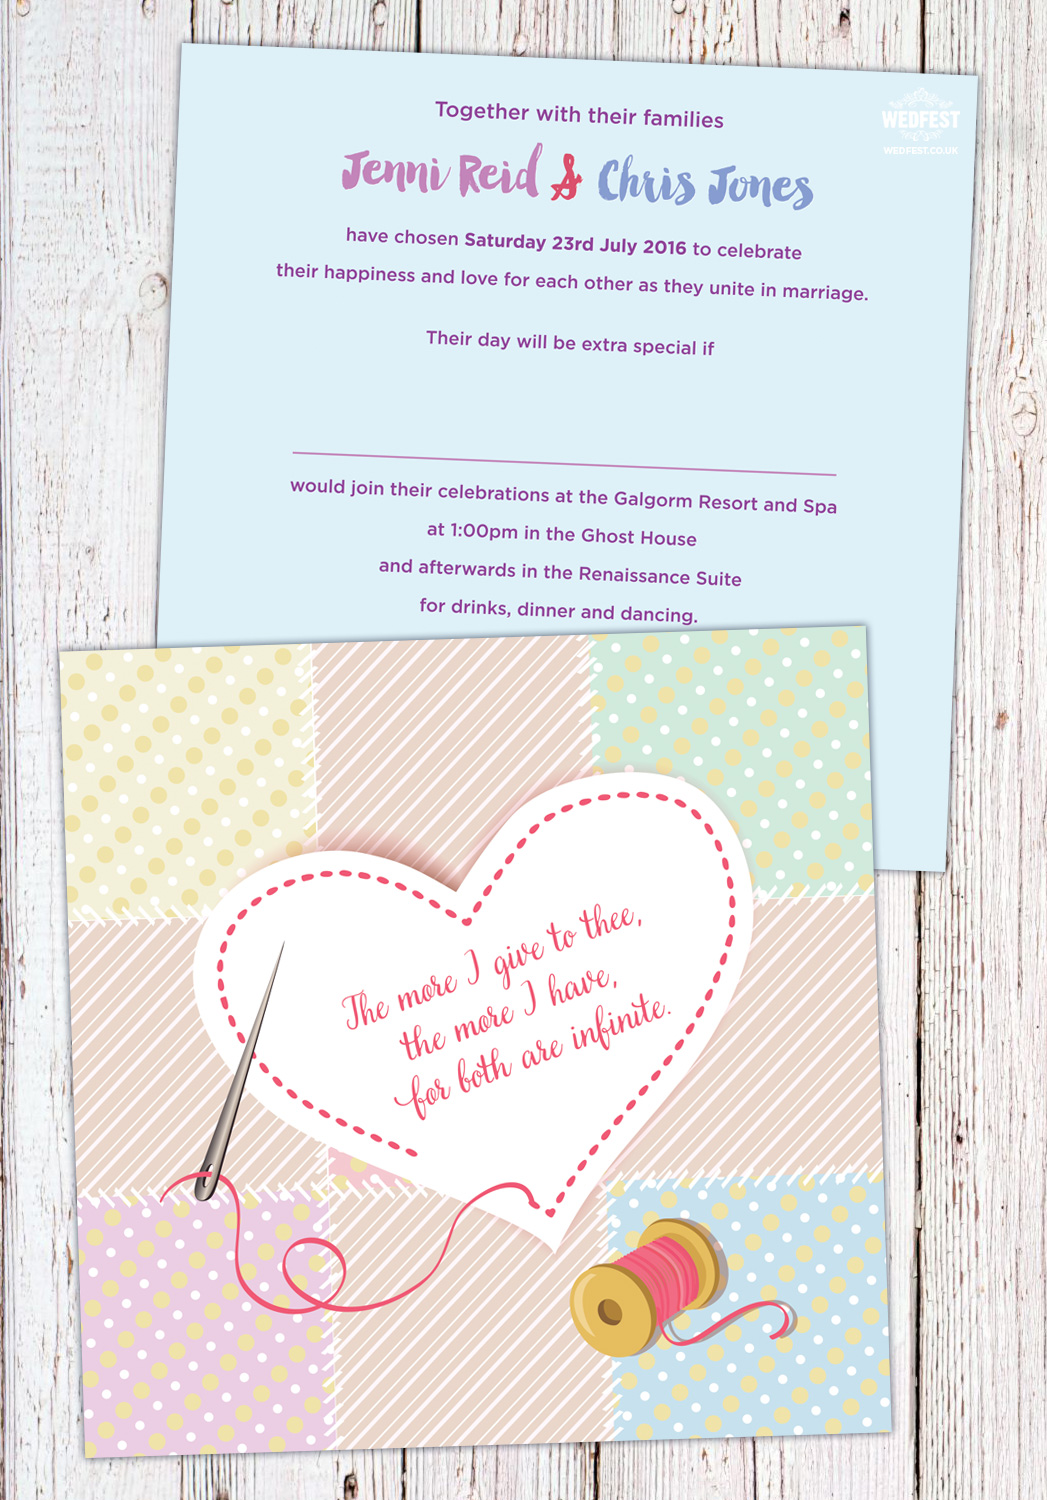 needle and thread stitch wedding invitations